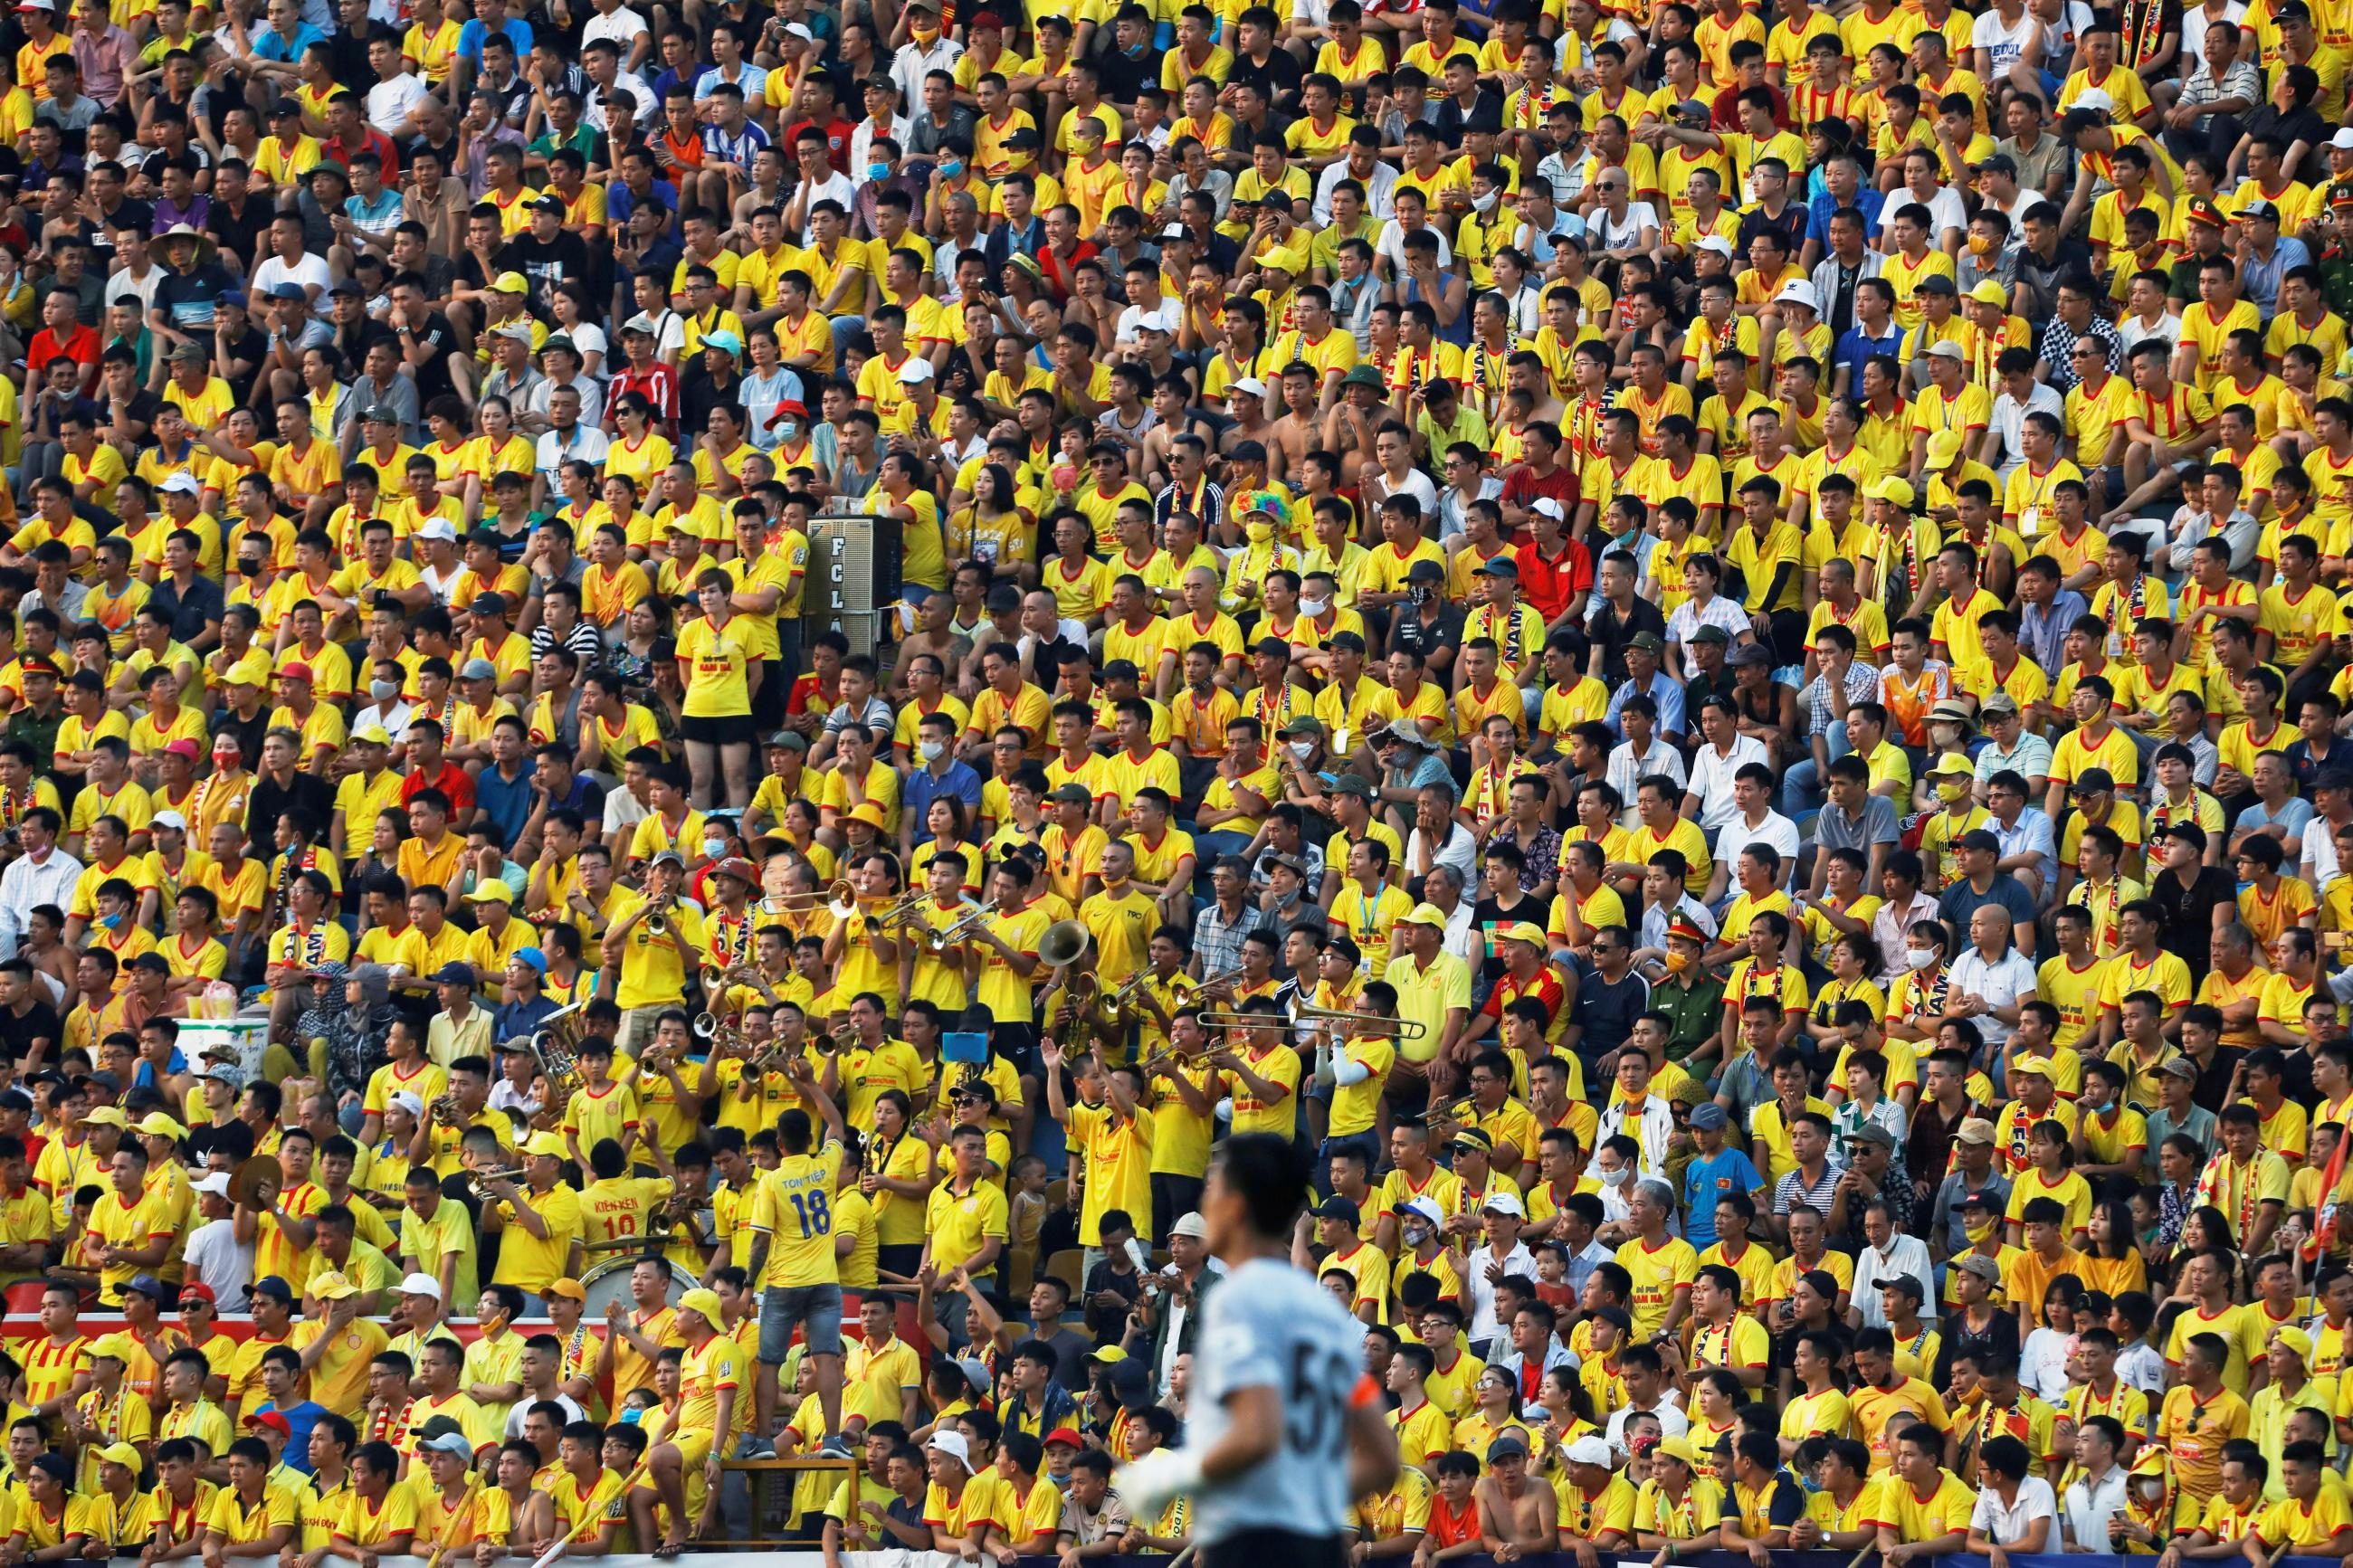 Soccer fans attend a match between Viettel and Duoc Nam Ha Nam Dinh of Vietnam's national soccer league after an outbreak and nationwide COVID-19 lockdown, in Nam Dinh province, Vietnam, on June 5, 2020.